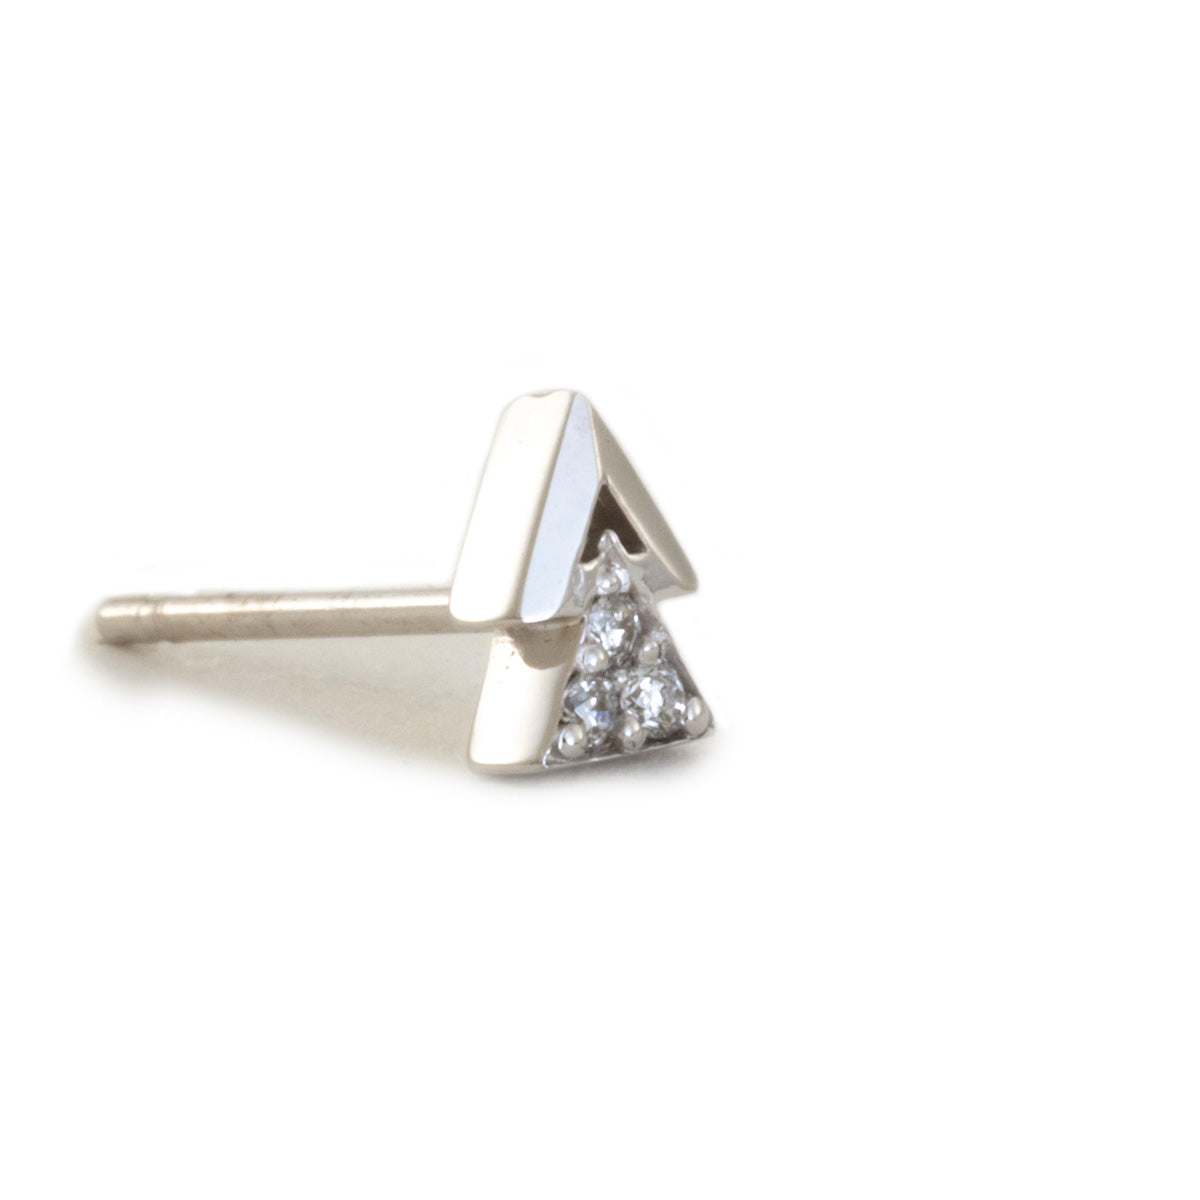 Double Triangle Earrings with Diamonds - 14K White Gold